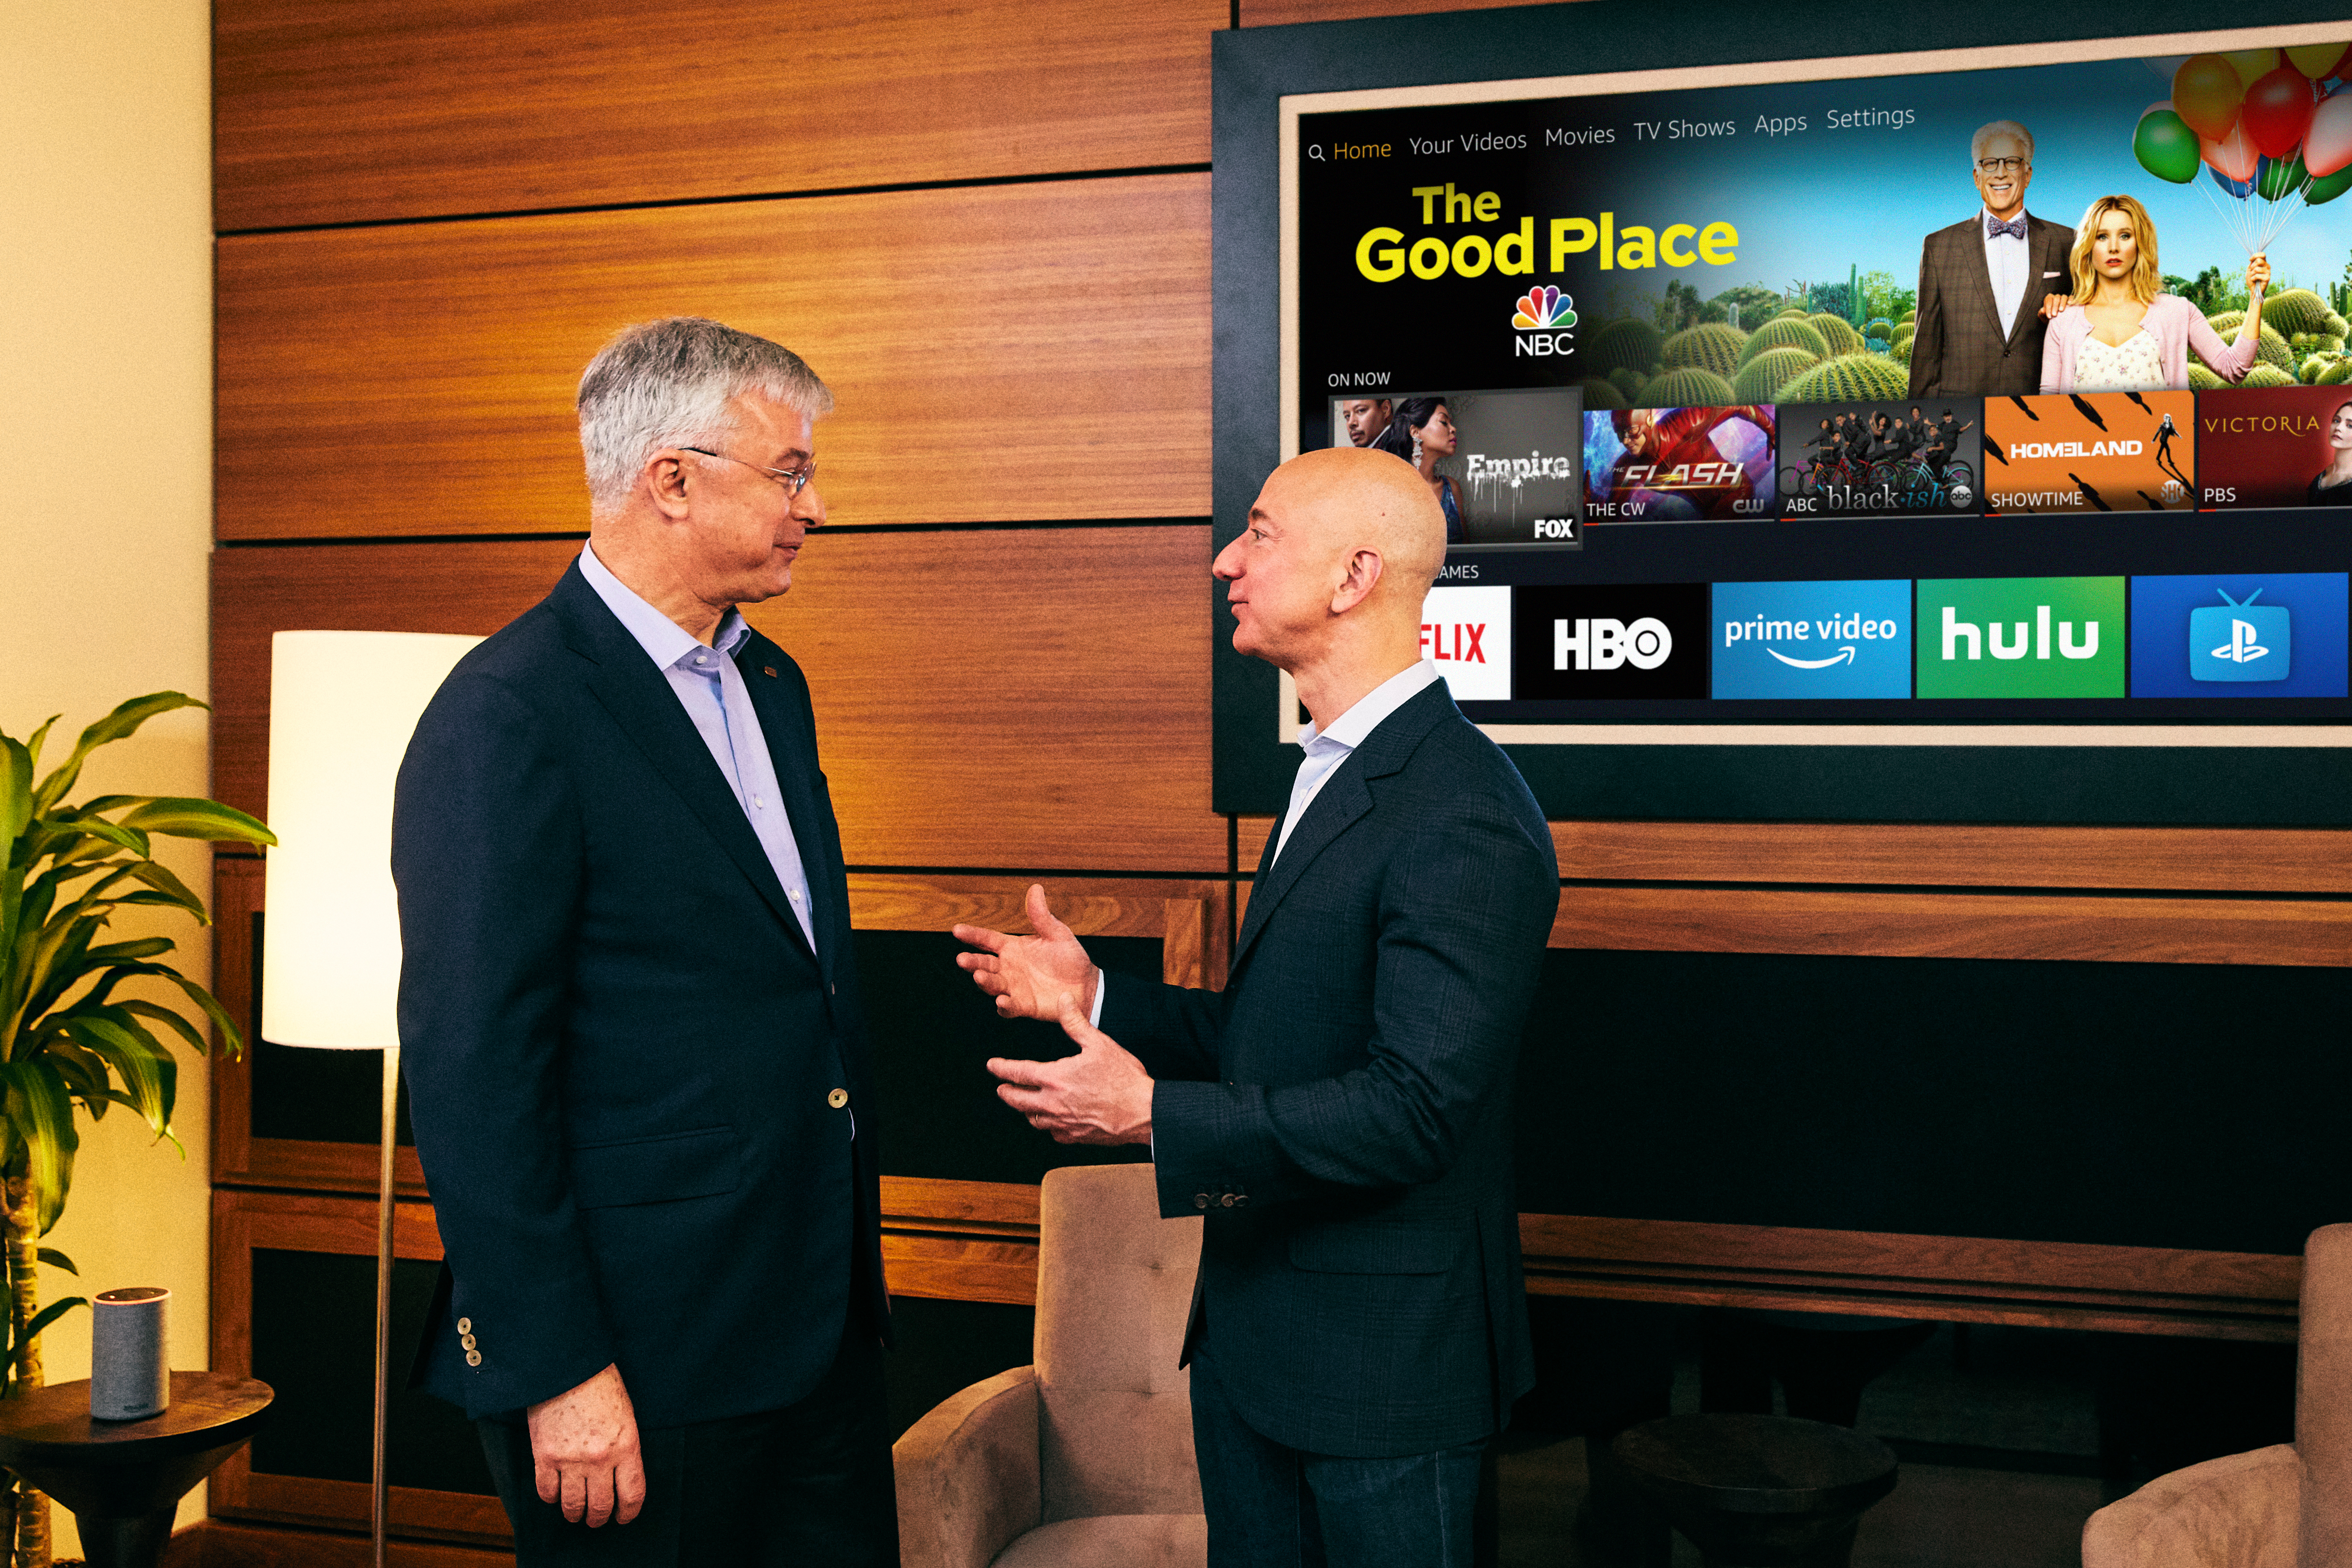 Amazon CEO Jeff Bezos chats with Best Buy CEO Hubert Joly in front of a Fire TV screen